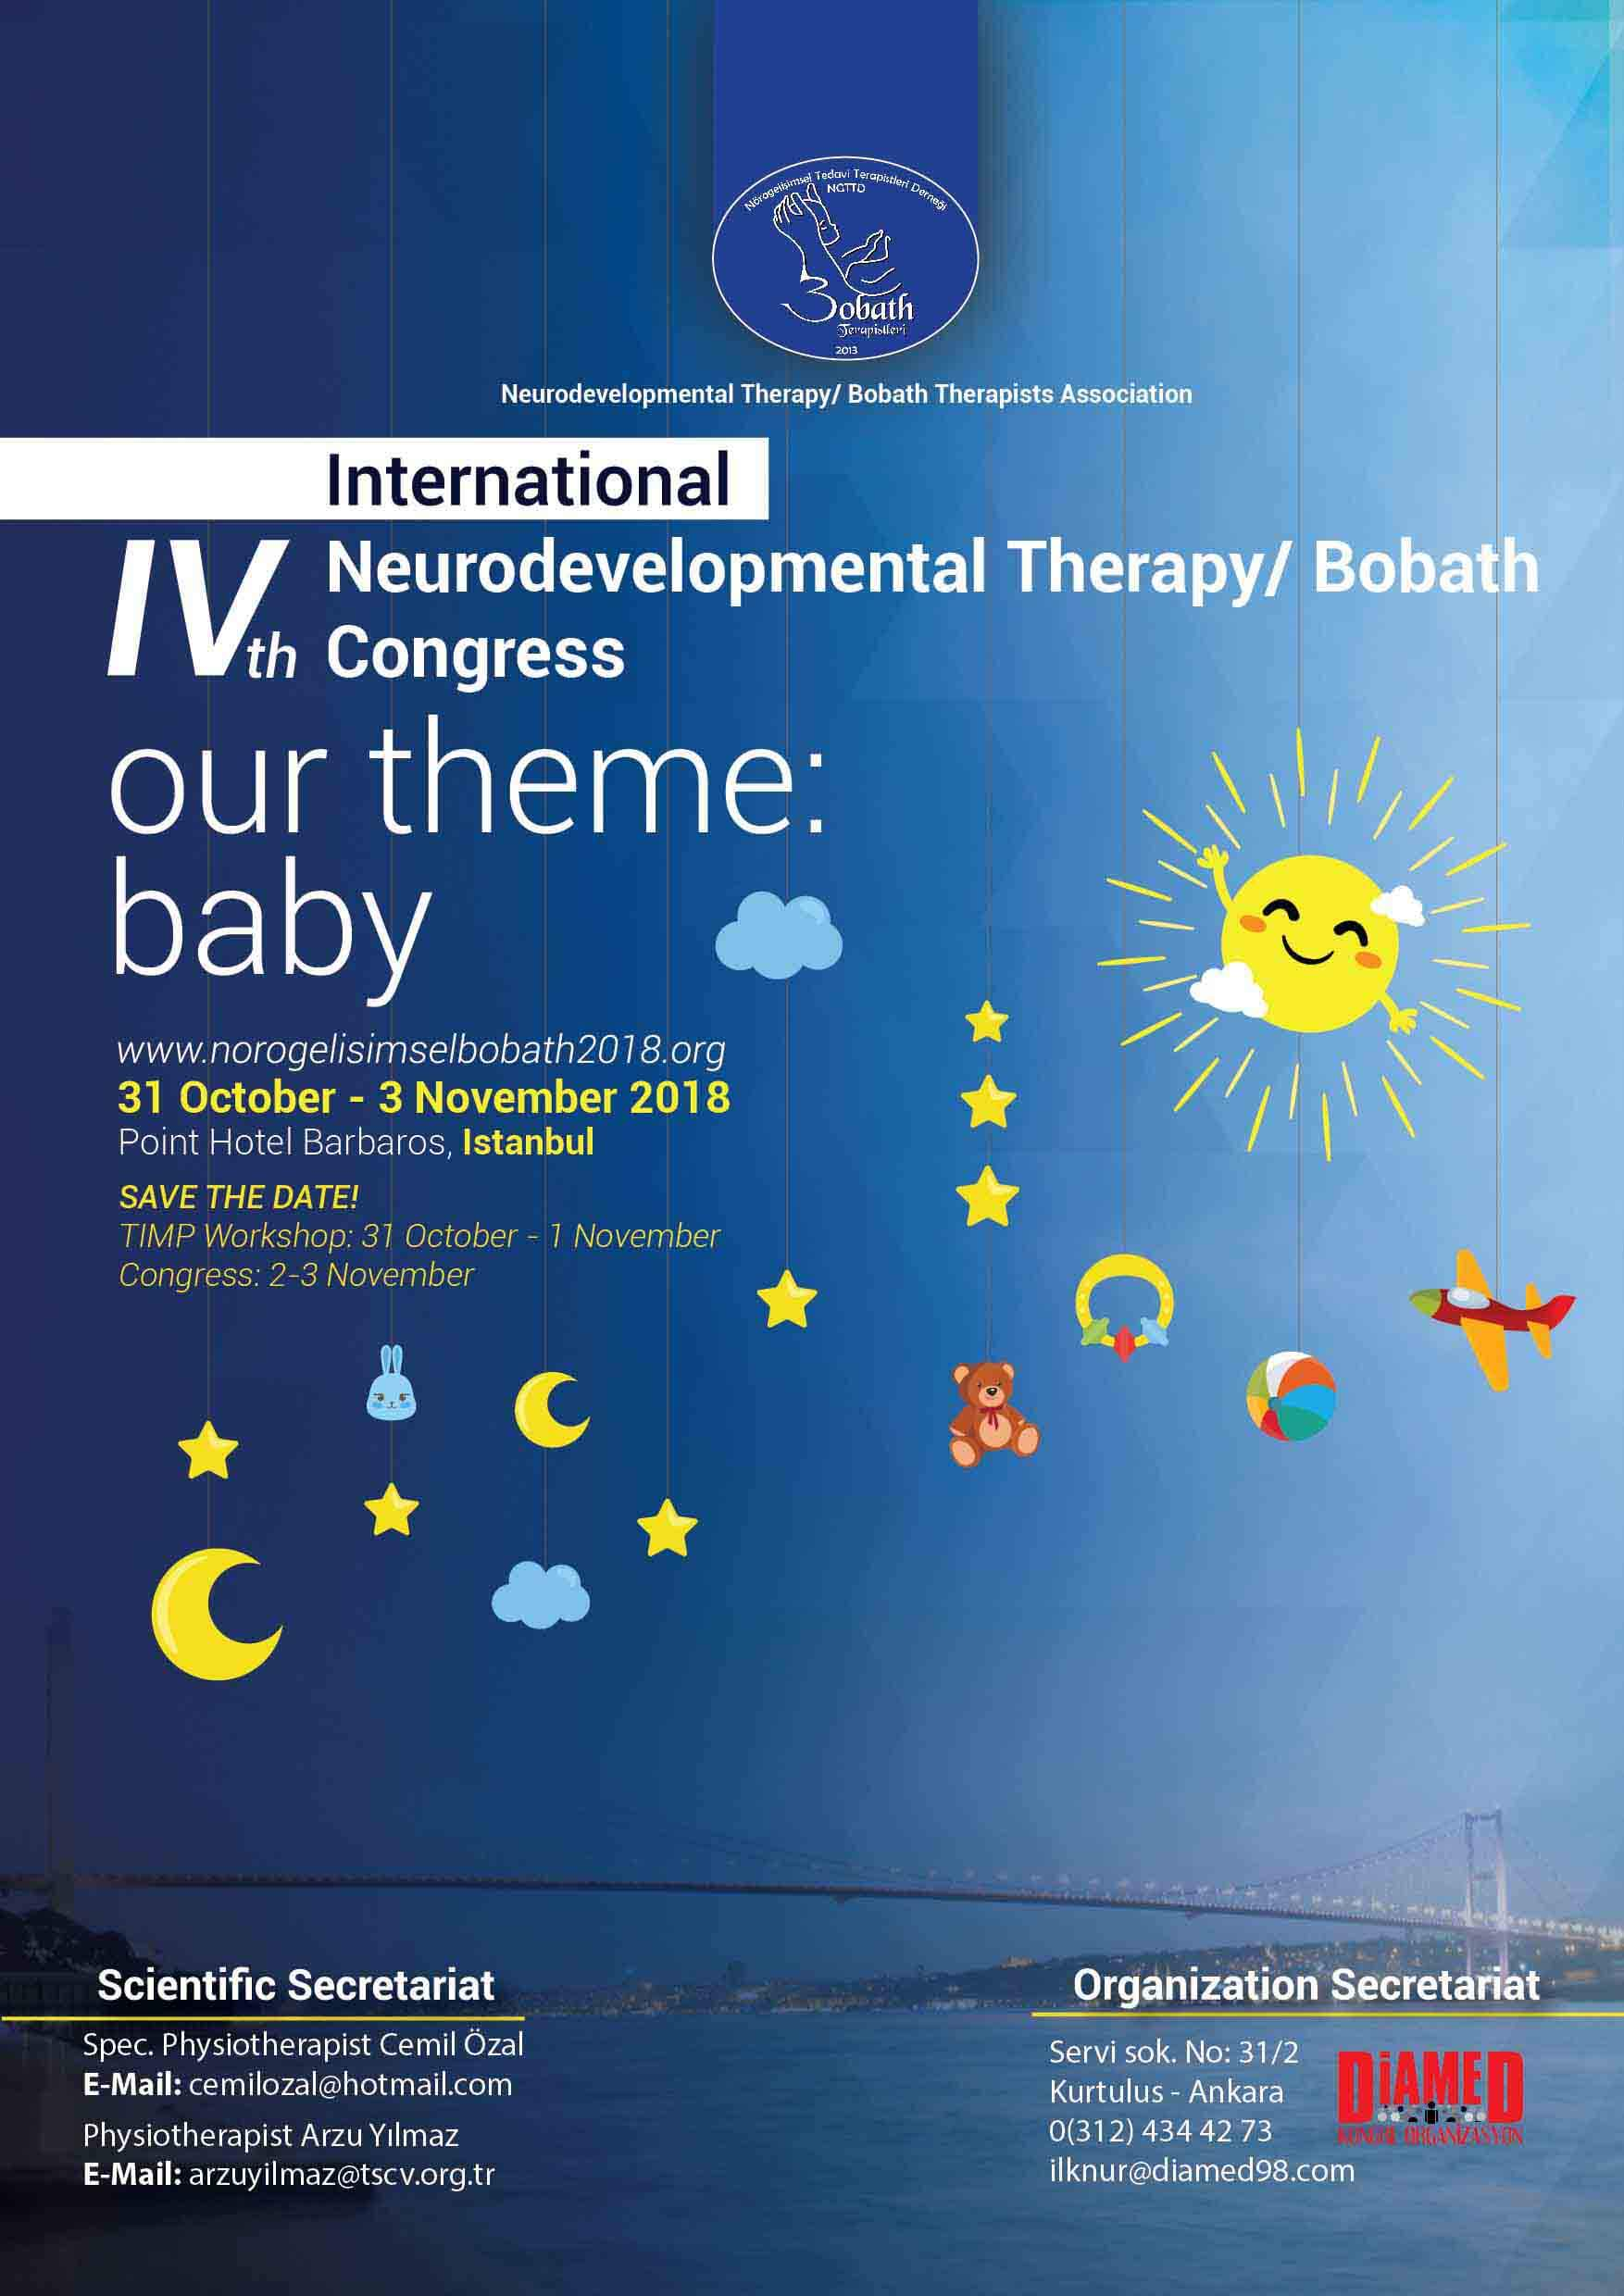 IVth Neurodevelopmental Therapy / Bobath Congress: Baby